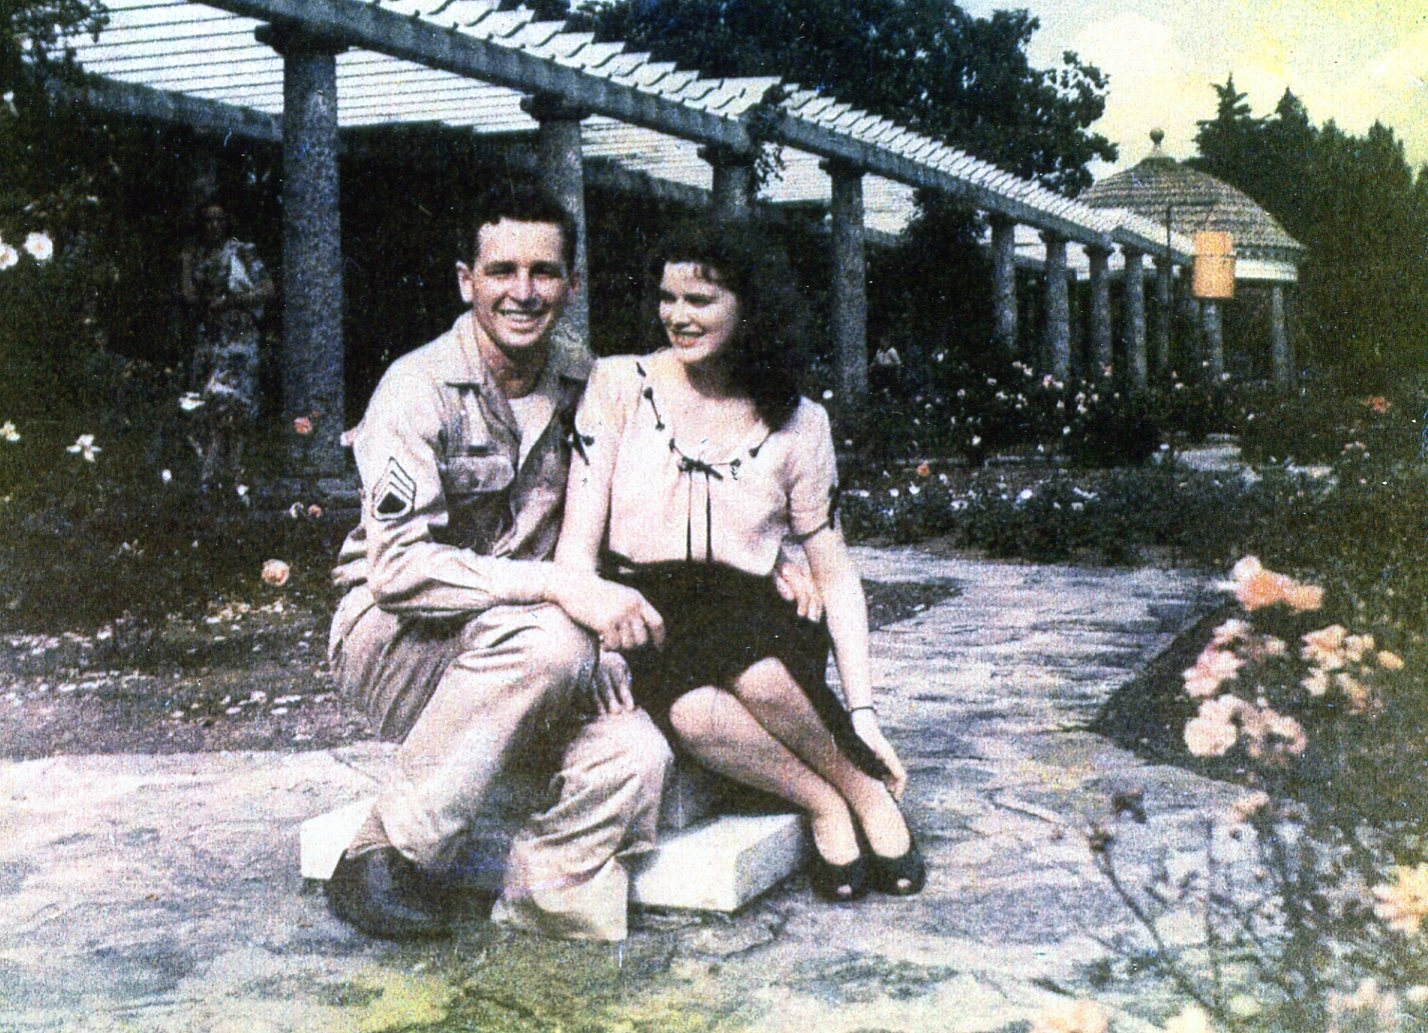 S/Sgt. Bill Blank and his fiance at Walter Reed Hospital in late 1945